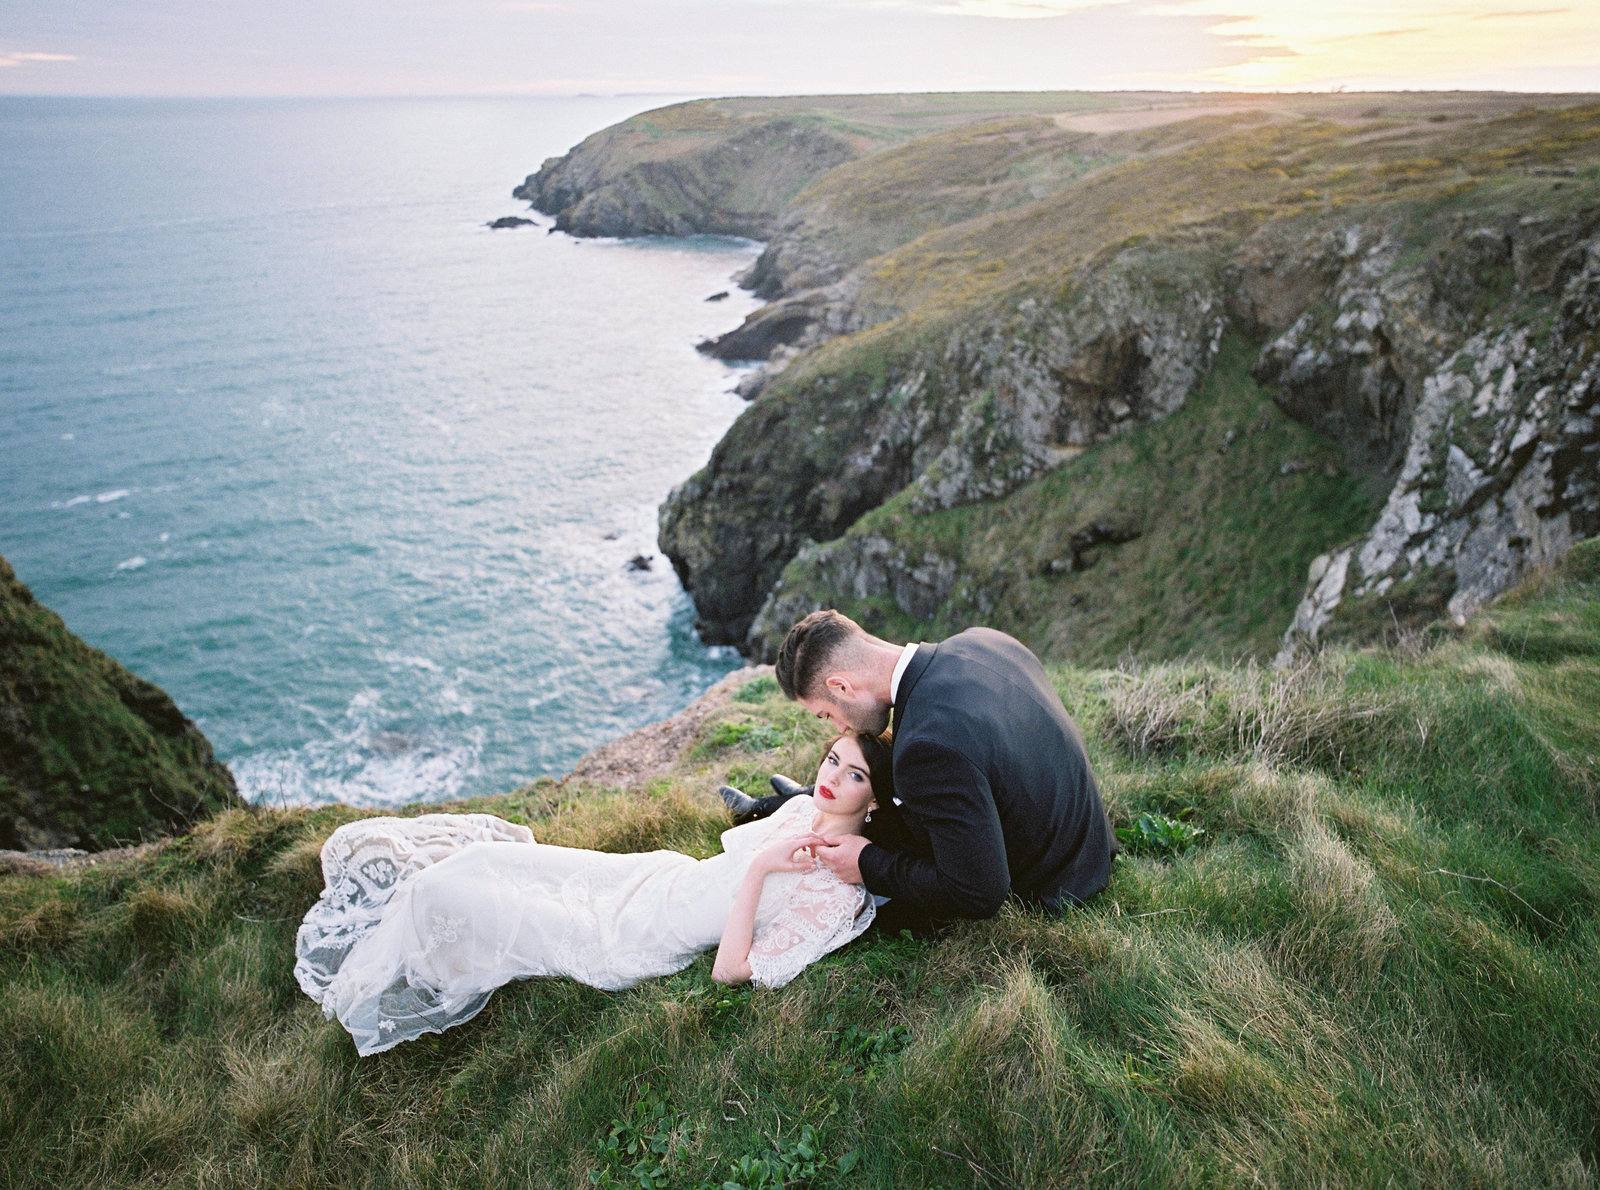 amelia_johnson_photography_for_atrendy_wedding_ireland00454